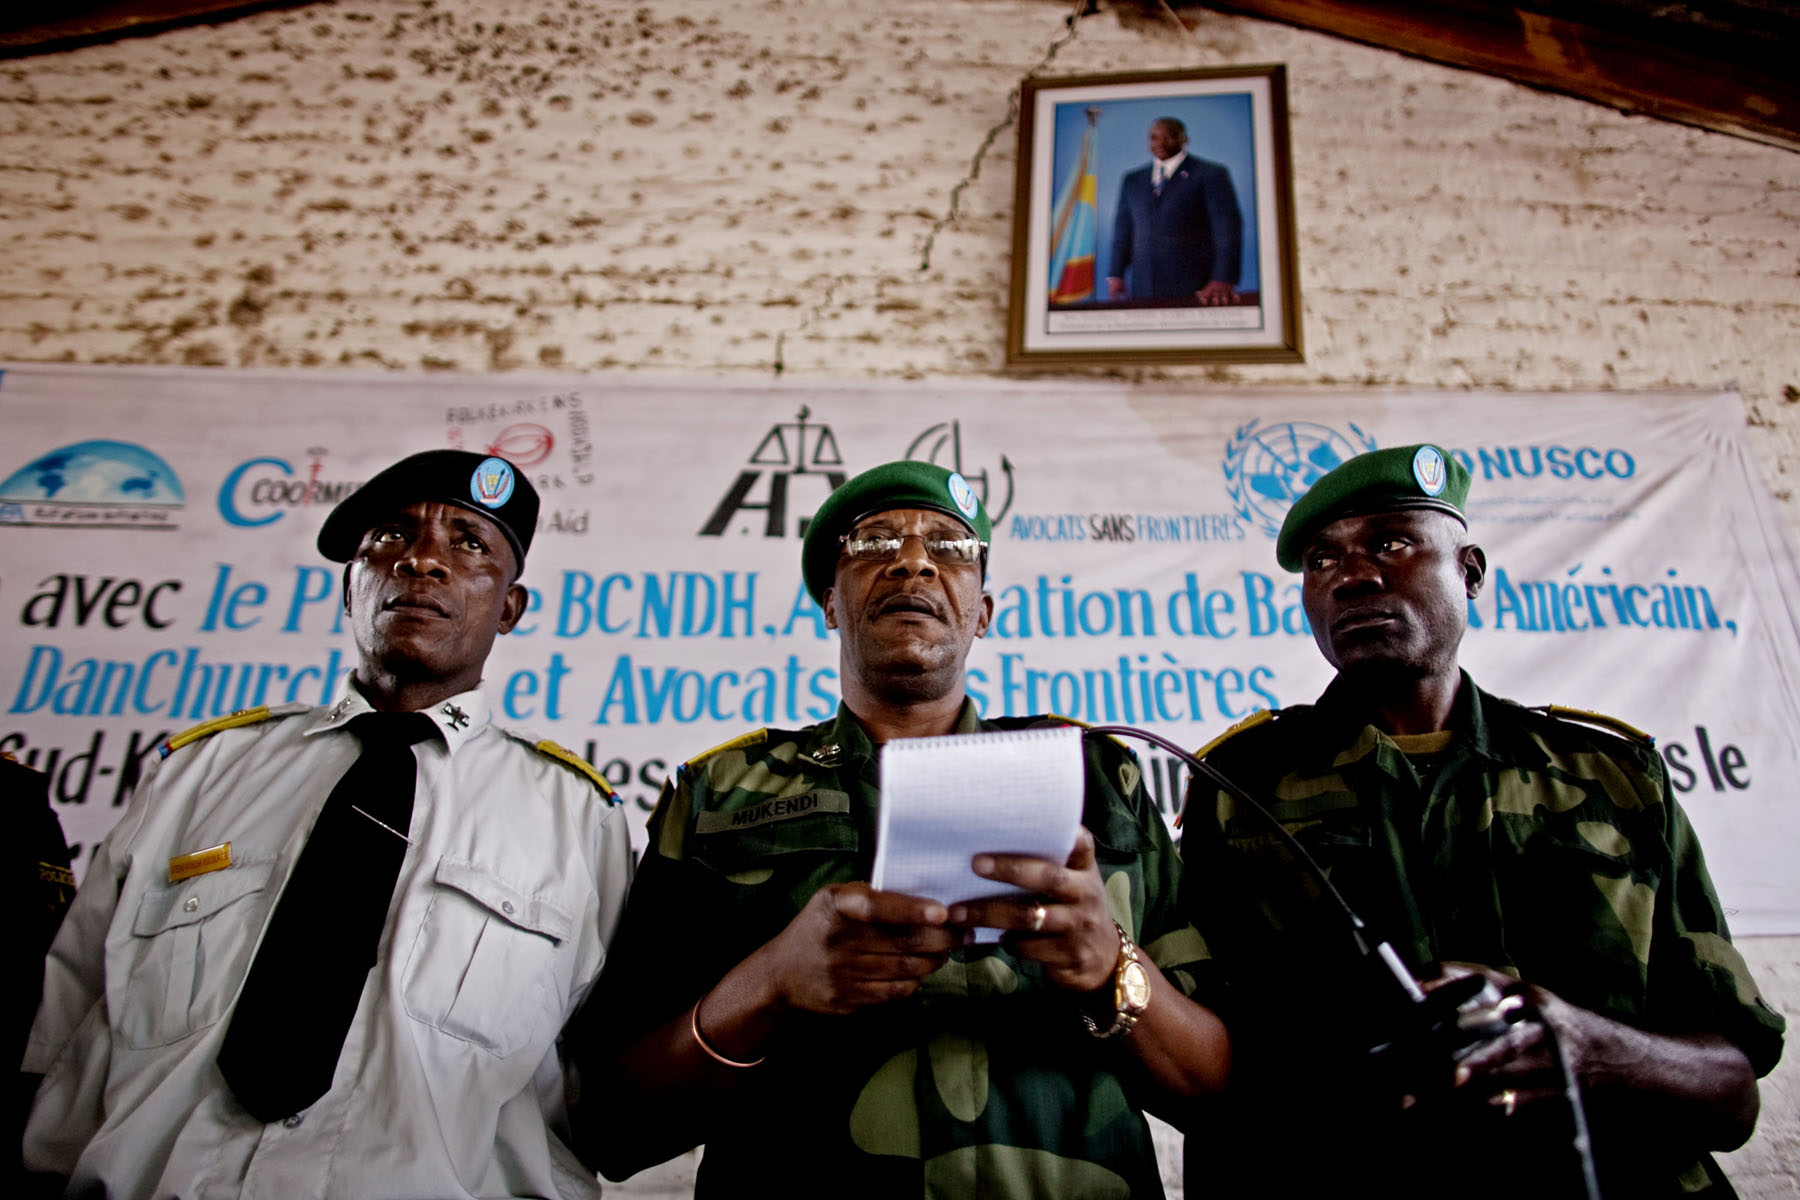 Freddy Mukendi (C), the President of the military court, reads out sentences on the final day of the trail. While the prosecution had requested the death penalty for Kebibi and others, that penalty was not handed down. The chief prosecutor was deeply disappointed and indicated that he plans to appeal those sentences. Kebibi and eight soldiers received lengthy prison sentences, one was acquitted and one was handed over to a juvenile tribunal for sentencing.